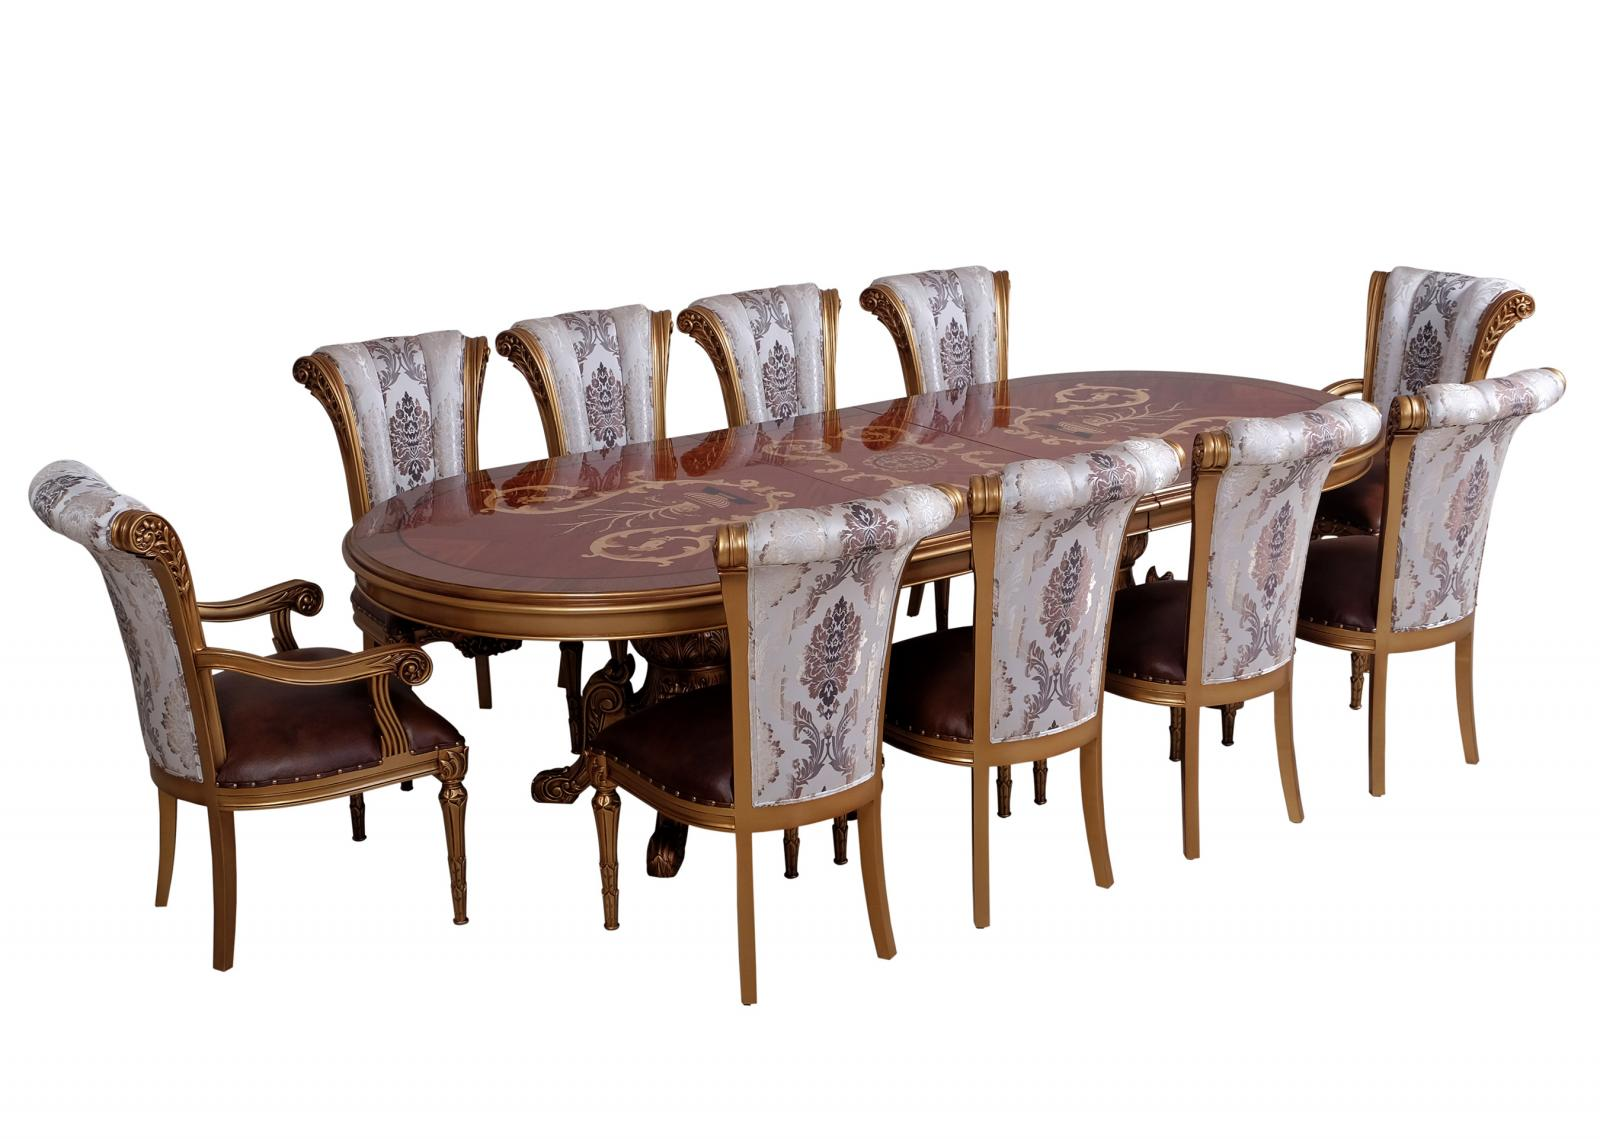 Classic, Traditional Bronze, Gold, Ebony, Pearl Leather and Fabric, Wood, Solid Hardwood Dining Table Set 11 pcs MAGGIOLINI by European Furniture